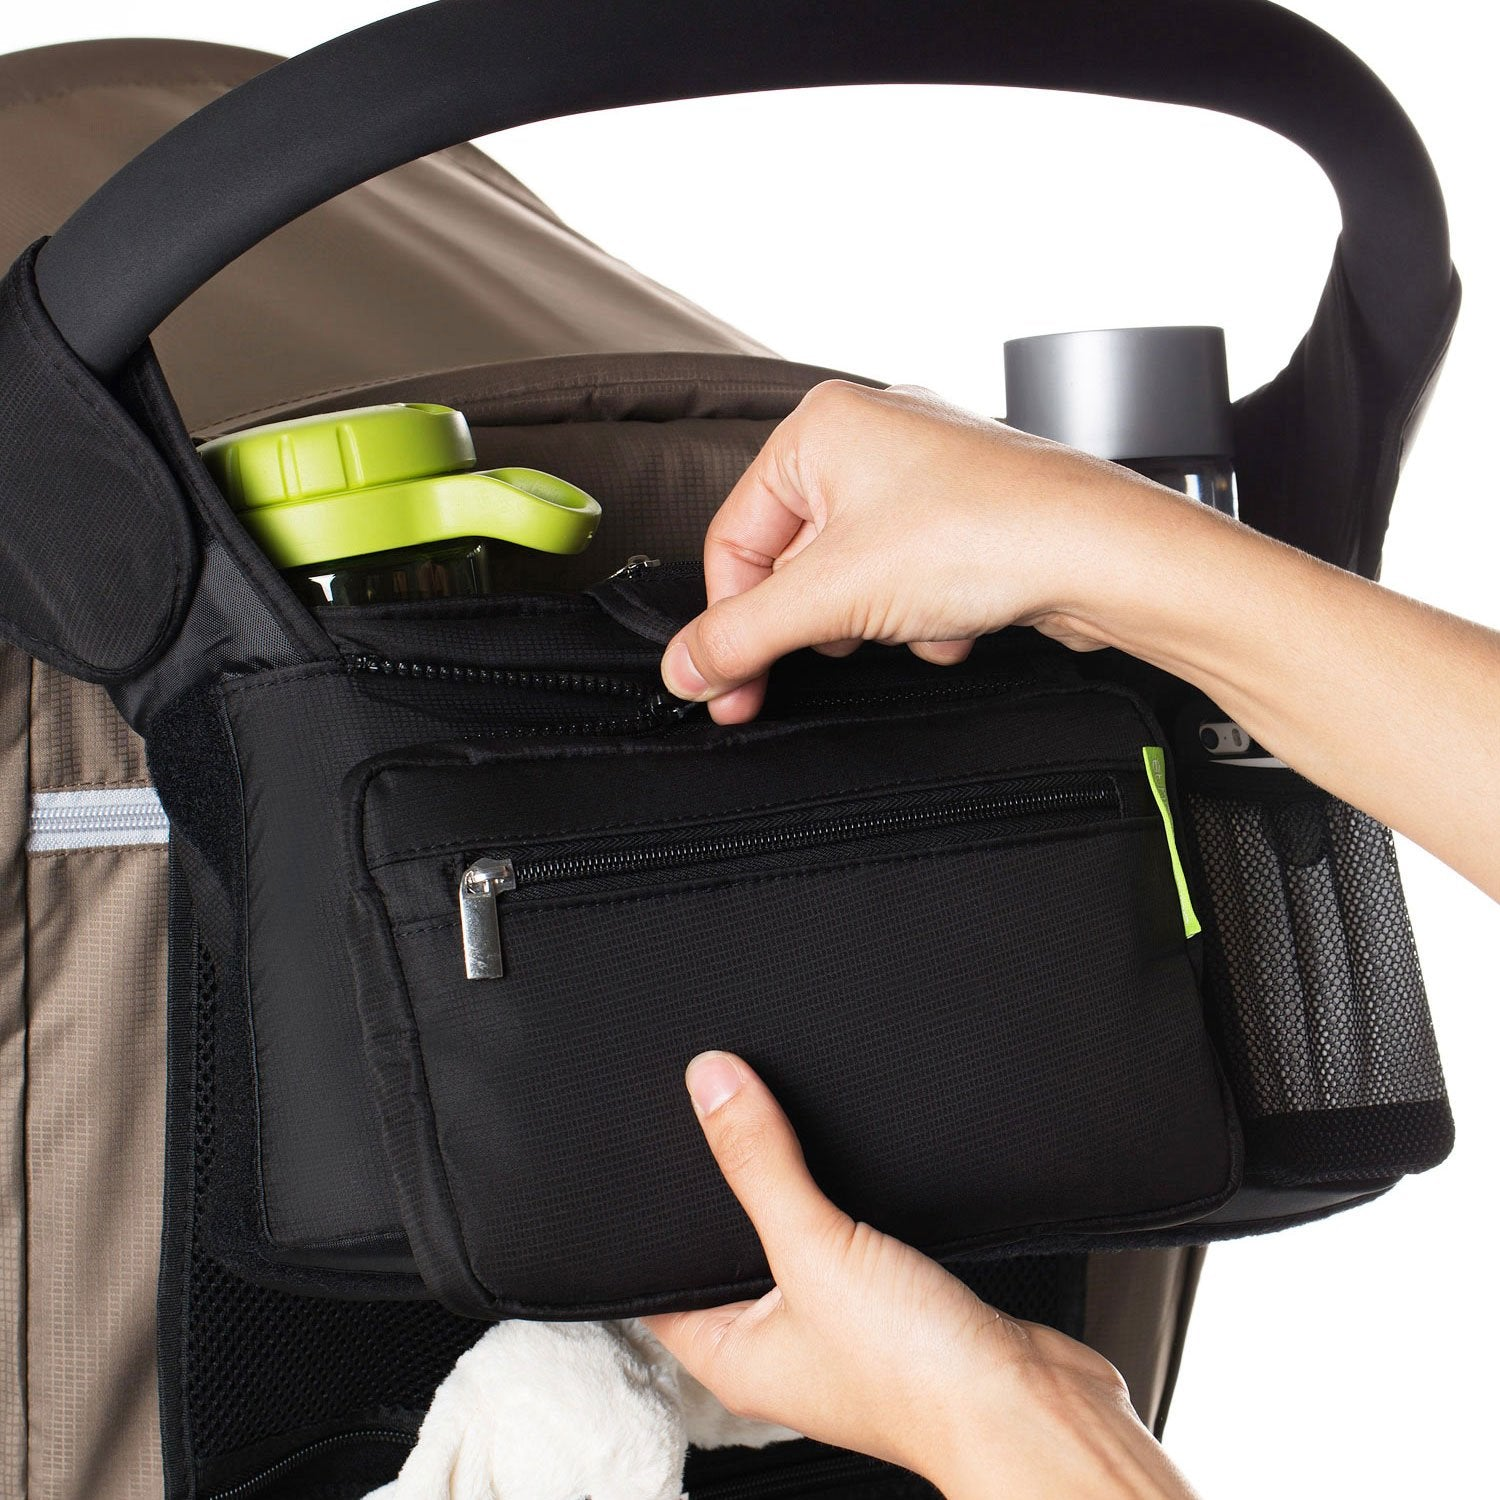 JuniorFX Baby Stroller Black Organiser Bag